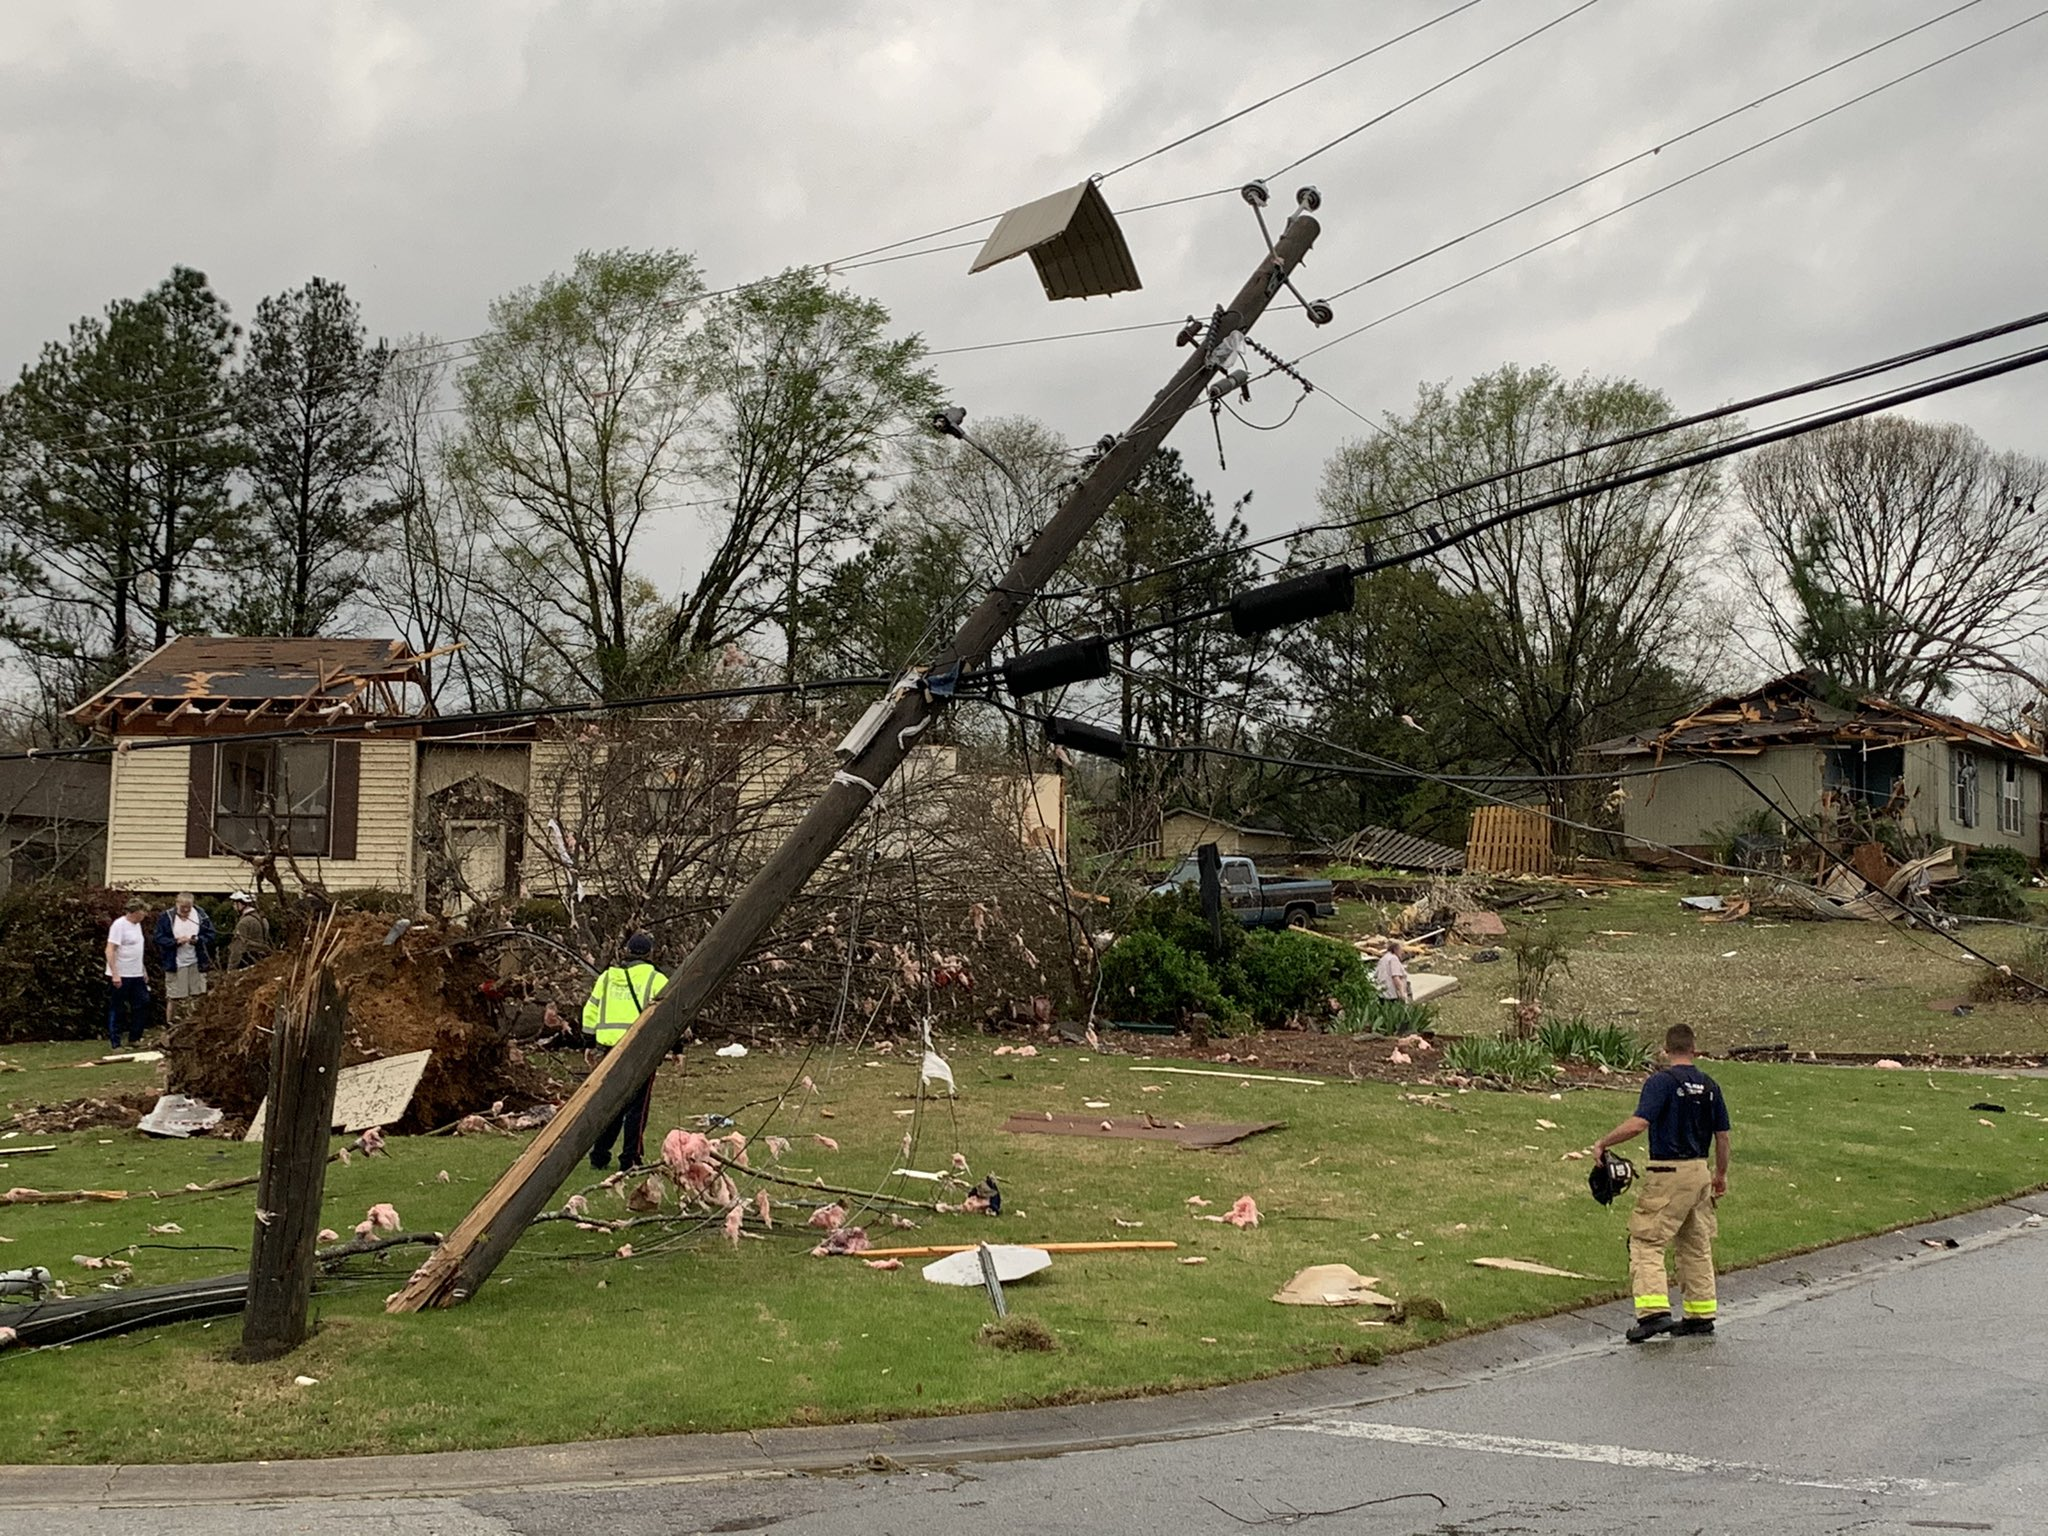 The South braces for tornado outbreak